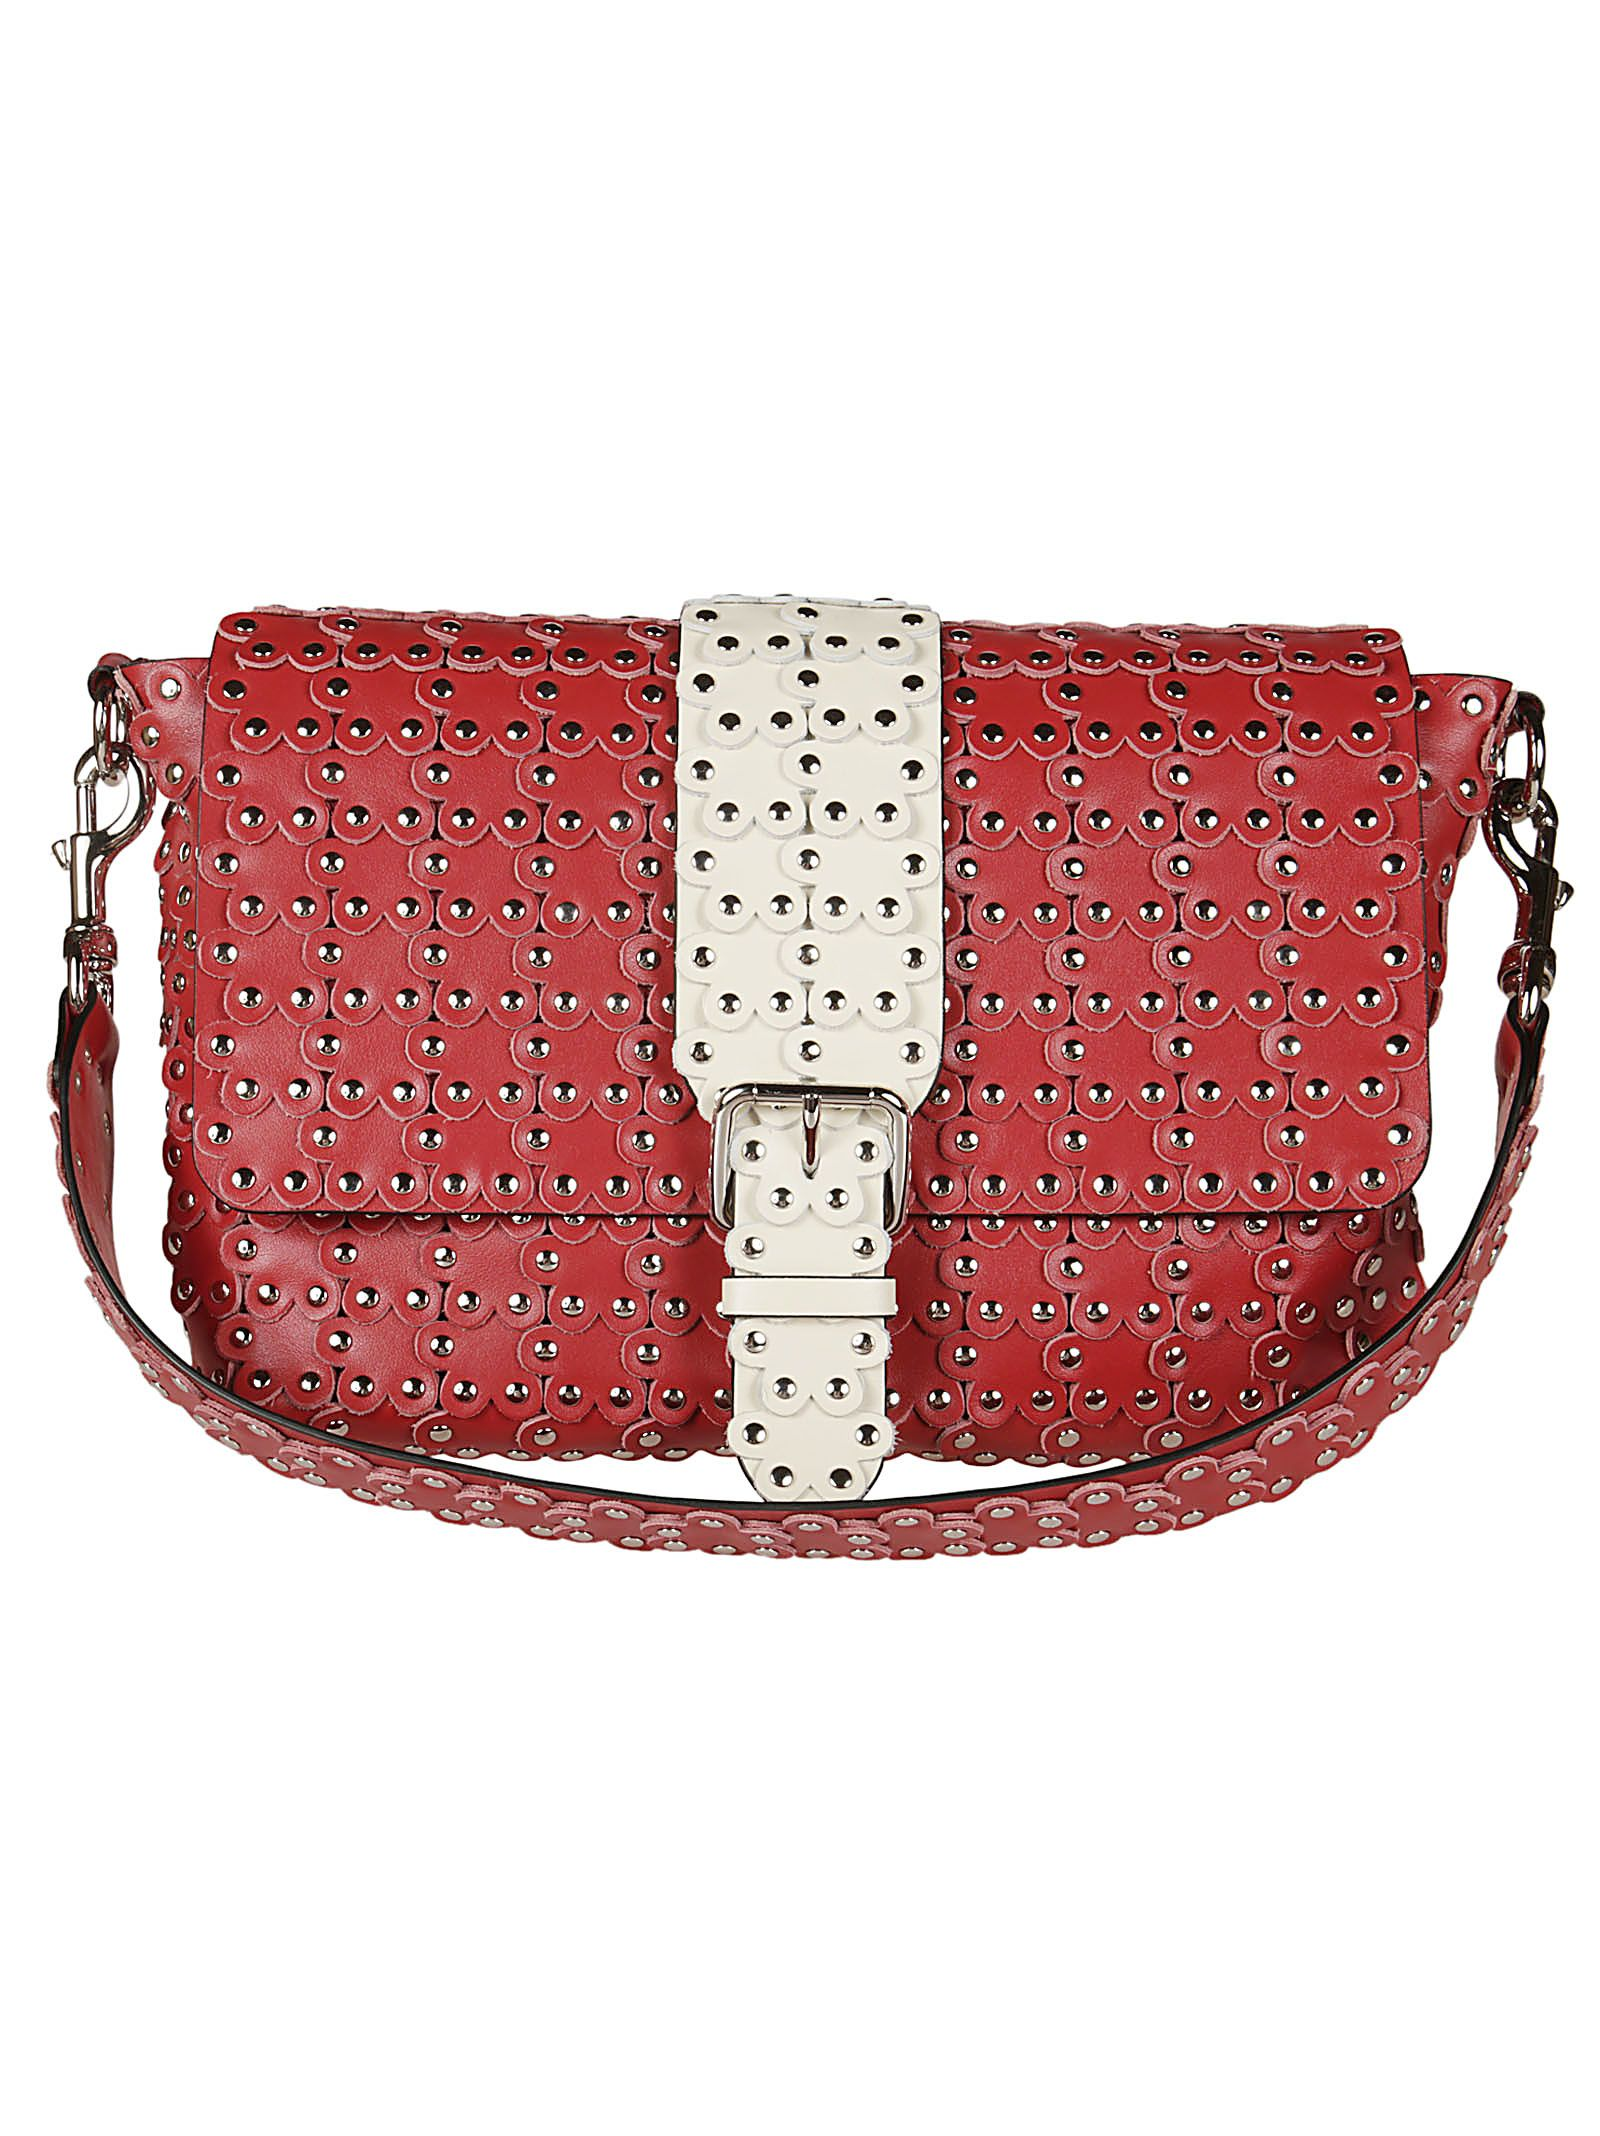 Red Valentino Studded Shoulder Bag